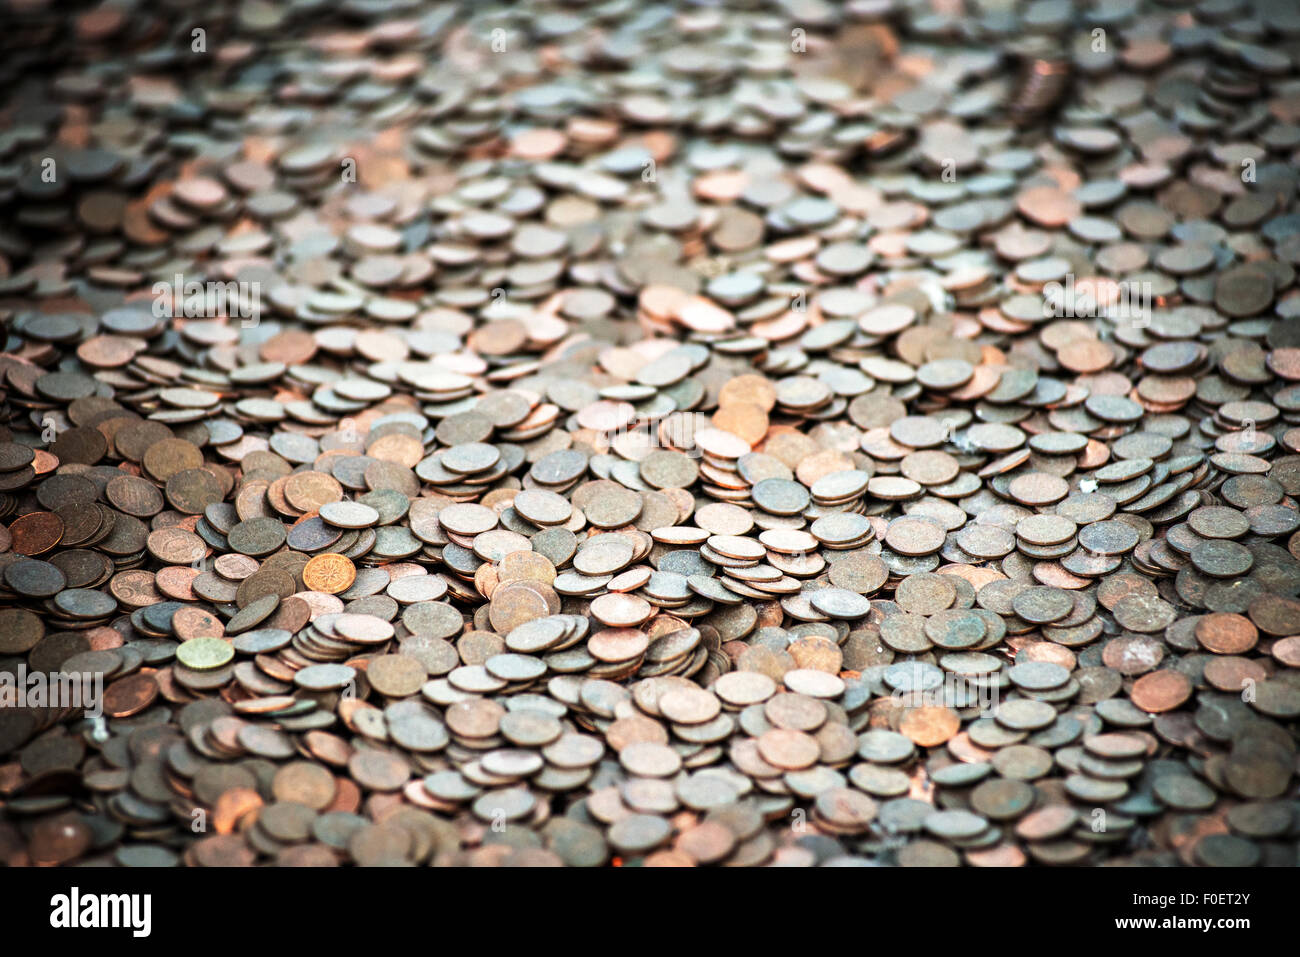 Thousands of coins on the floor, spot light - Stock Image